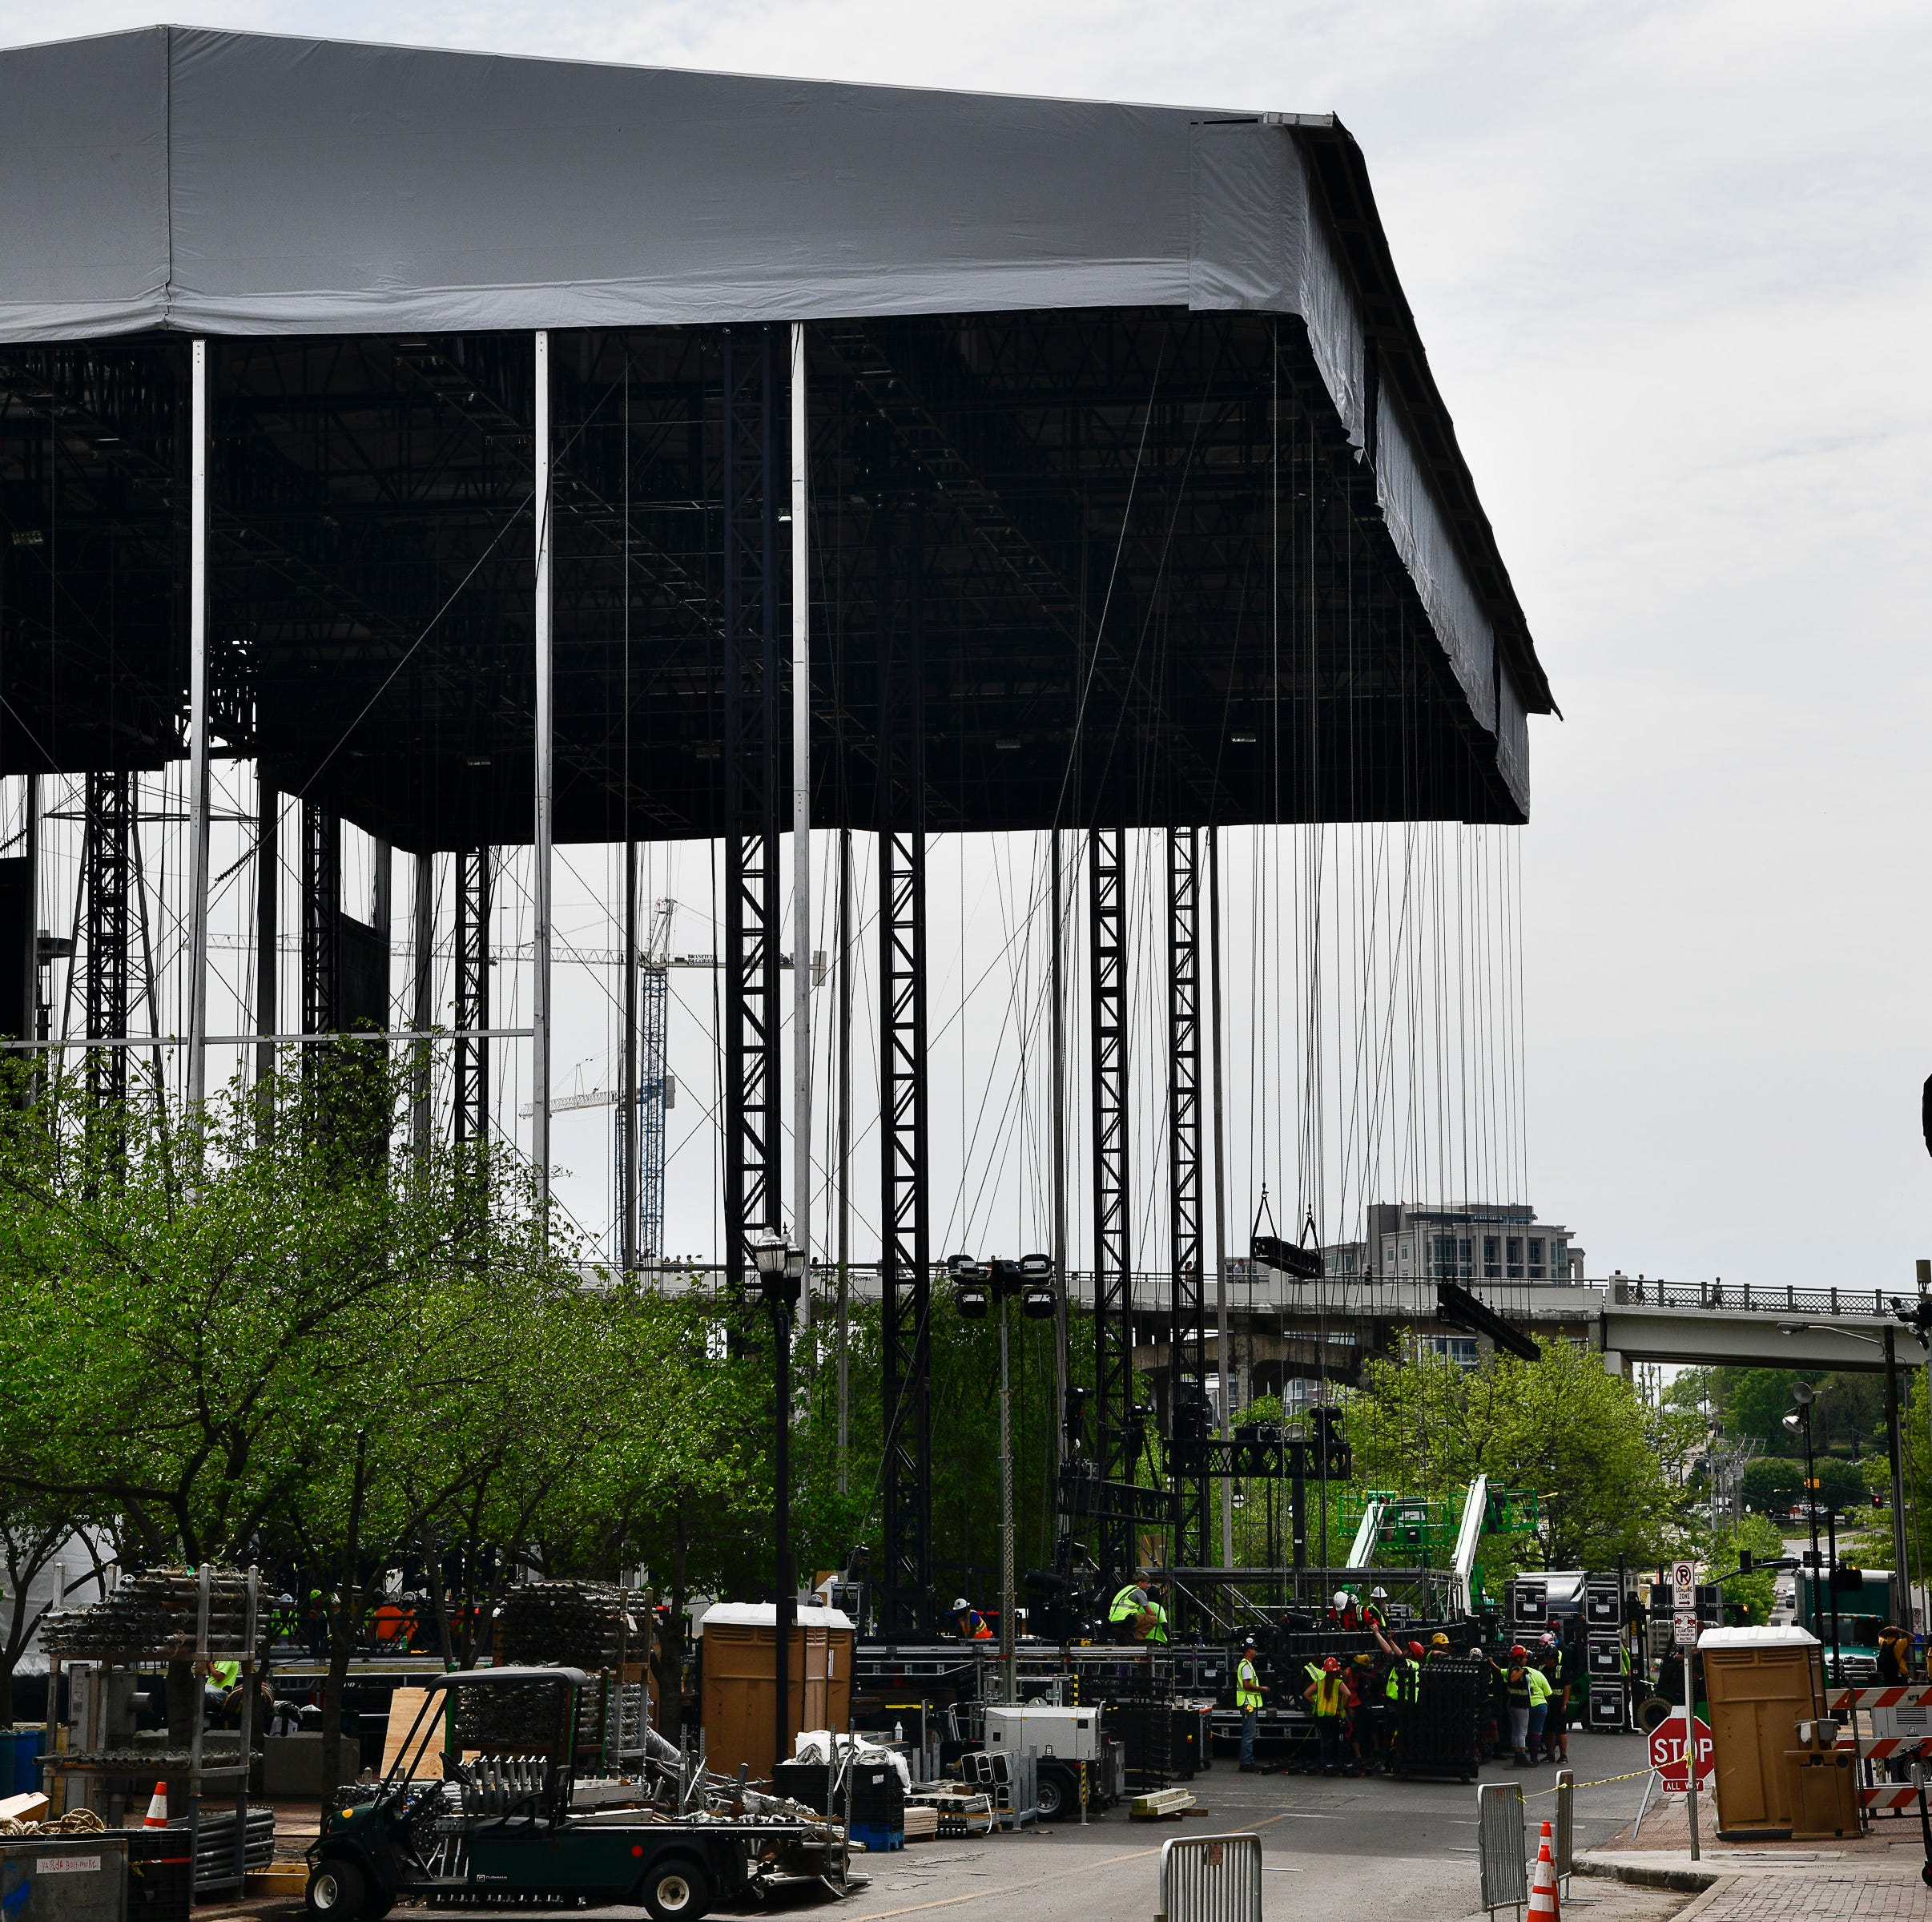 Opening night of the NFL Draft may be rainy: Here's what you need to know